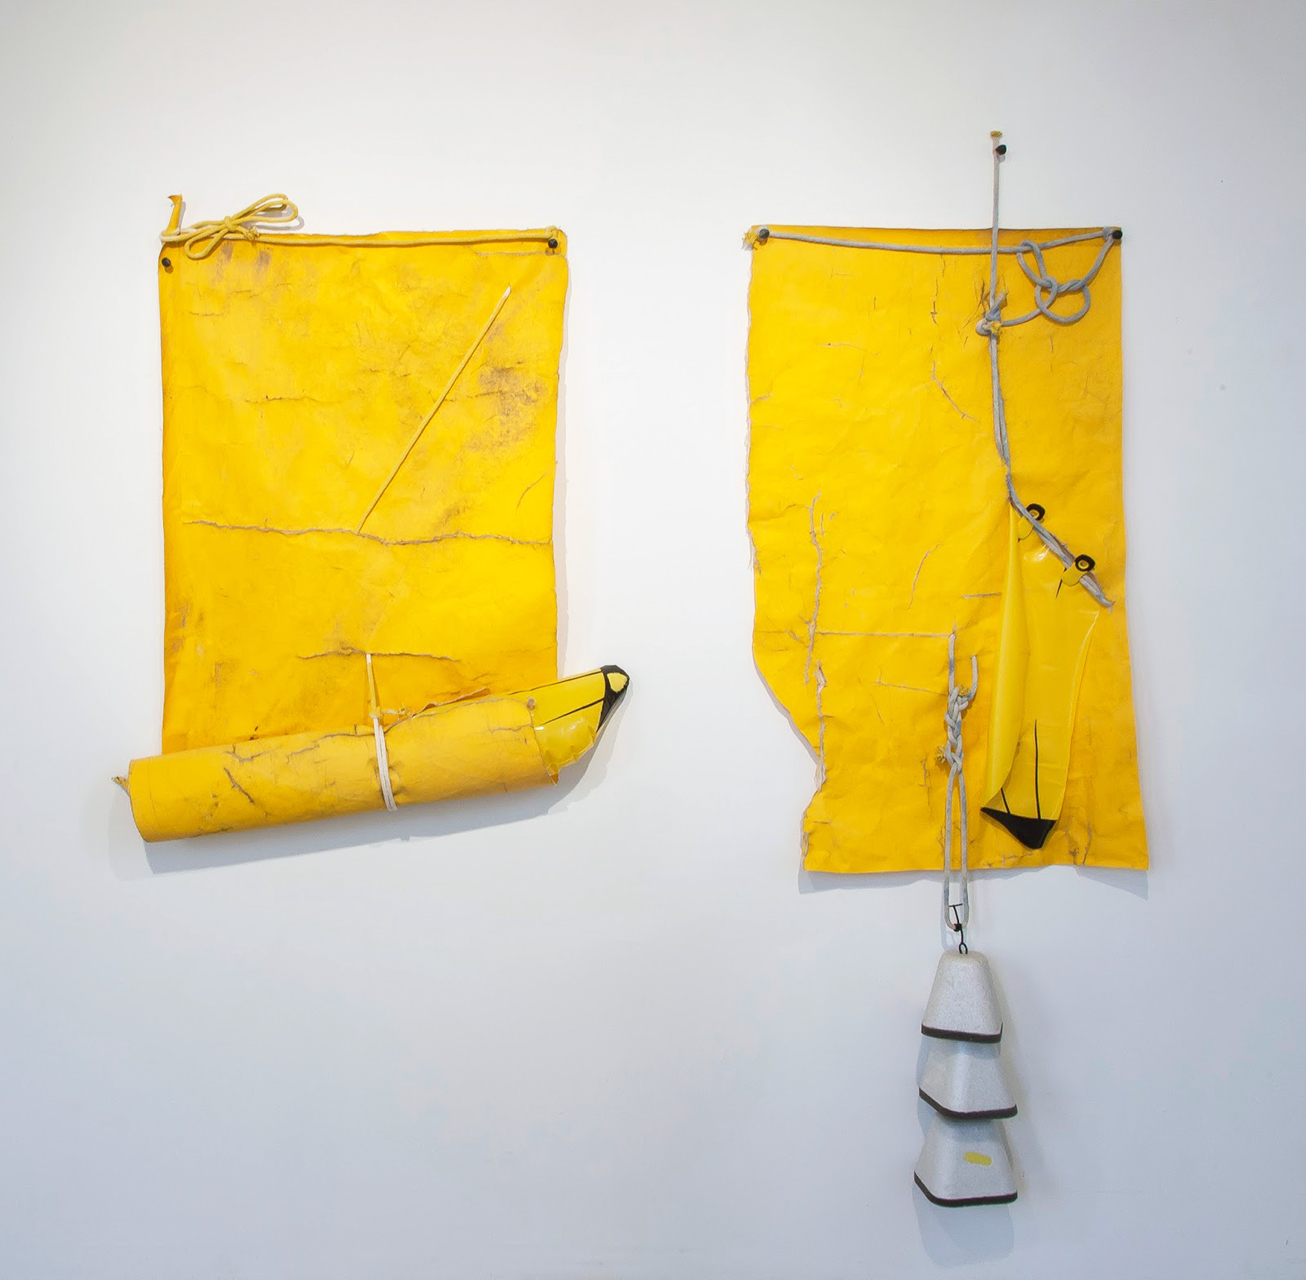 No Bananas On Board, 2016 Tarp, rope, inflatable bananas 41 x 60 x 12 inches